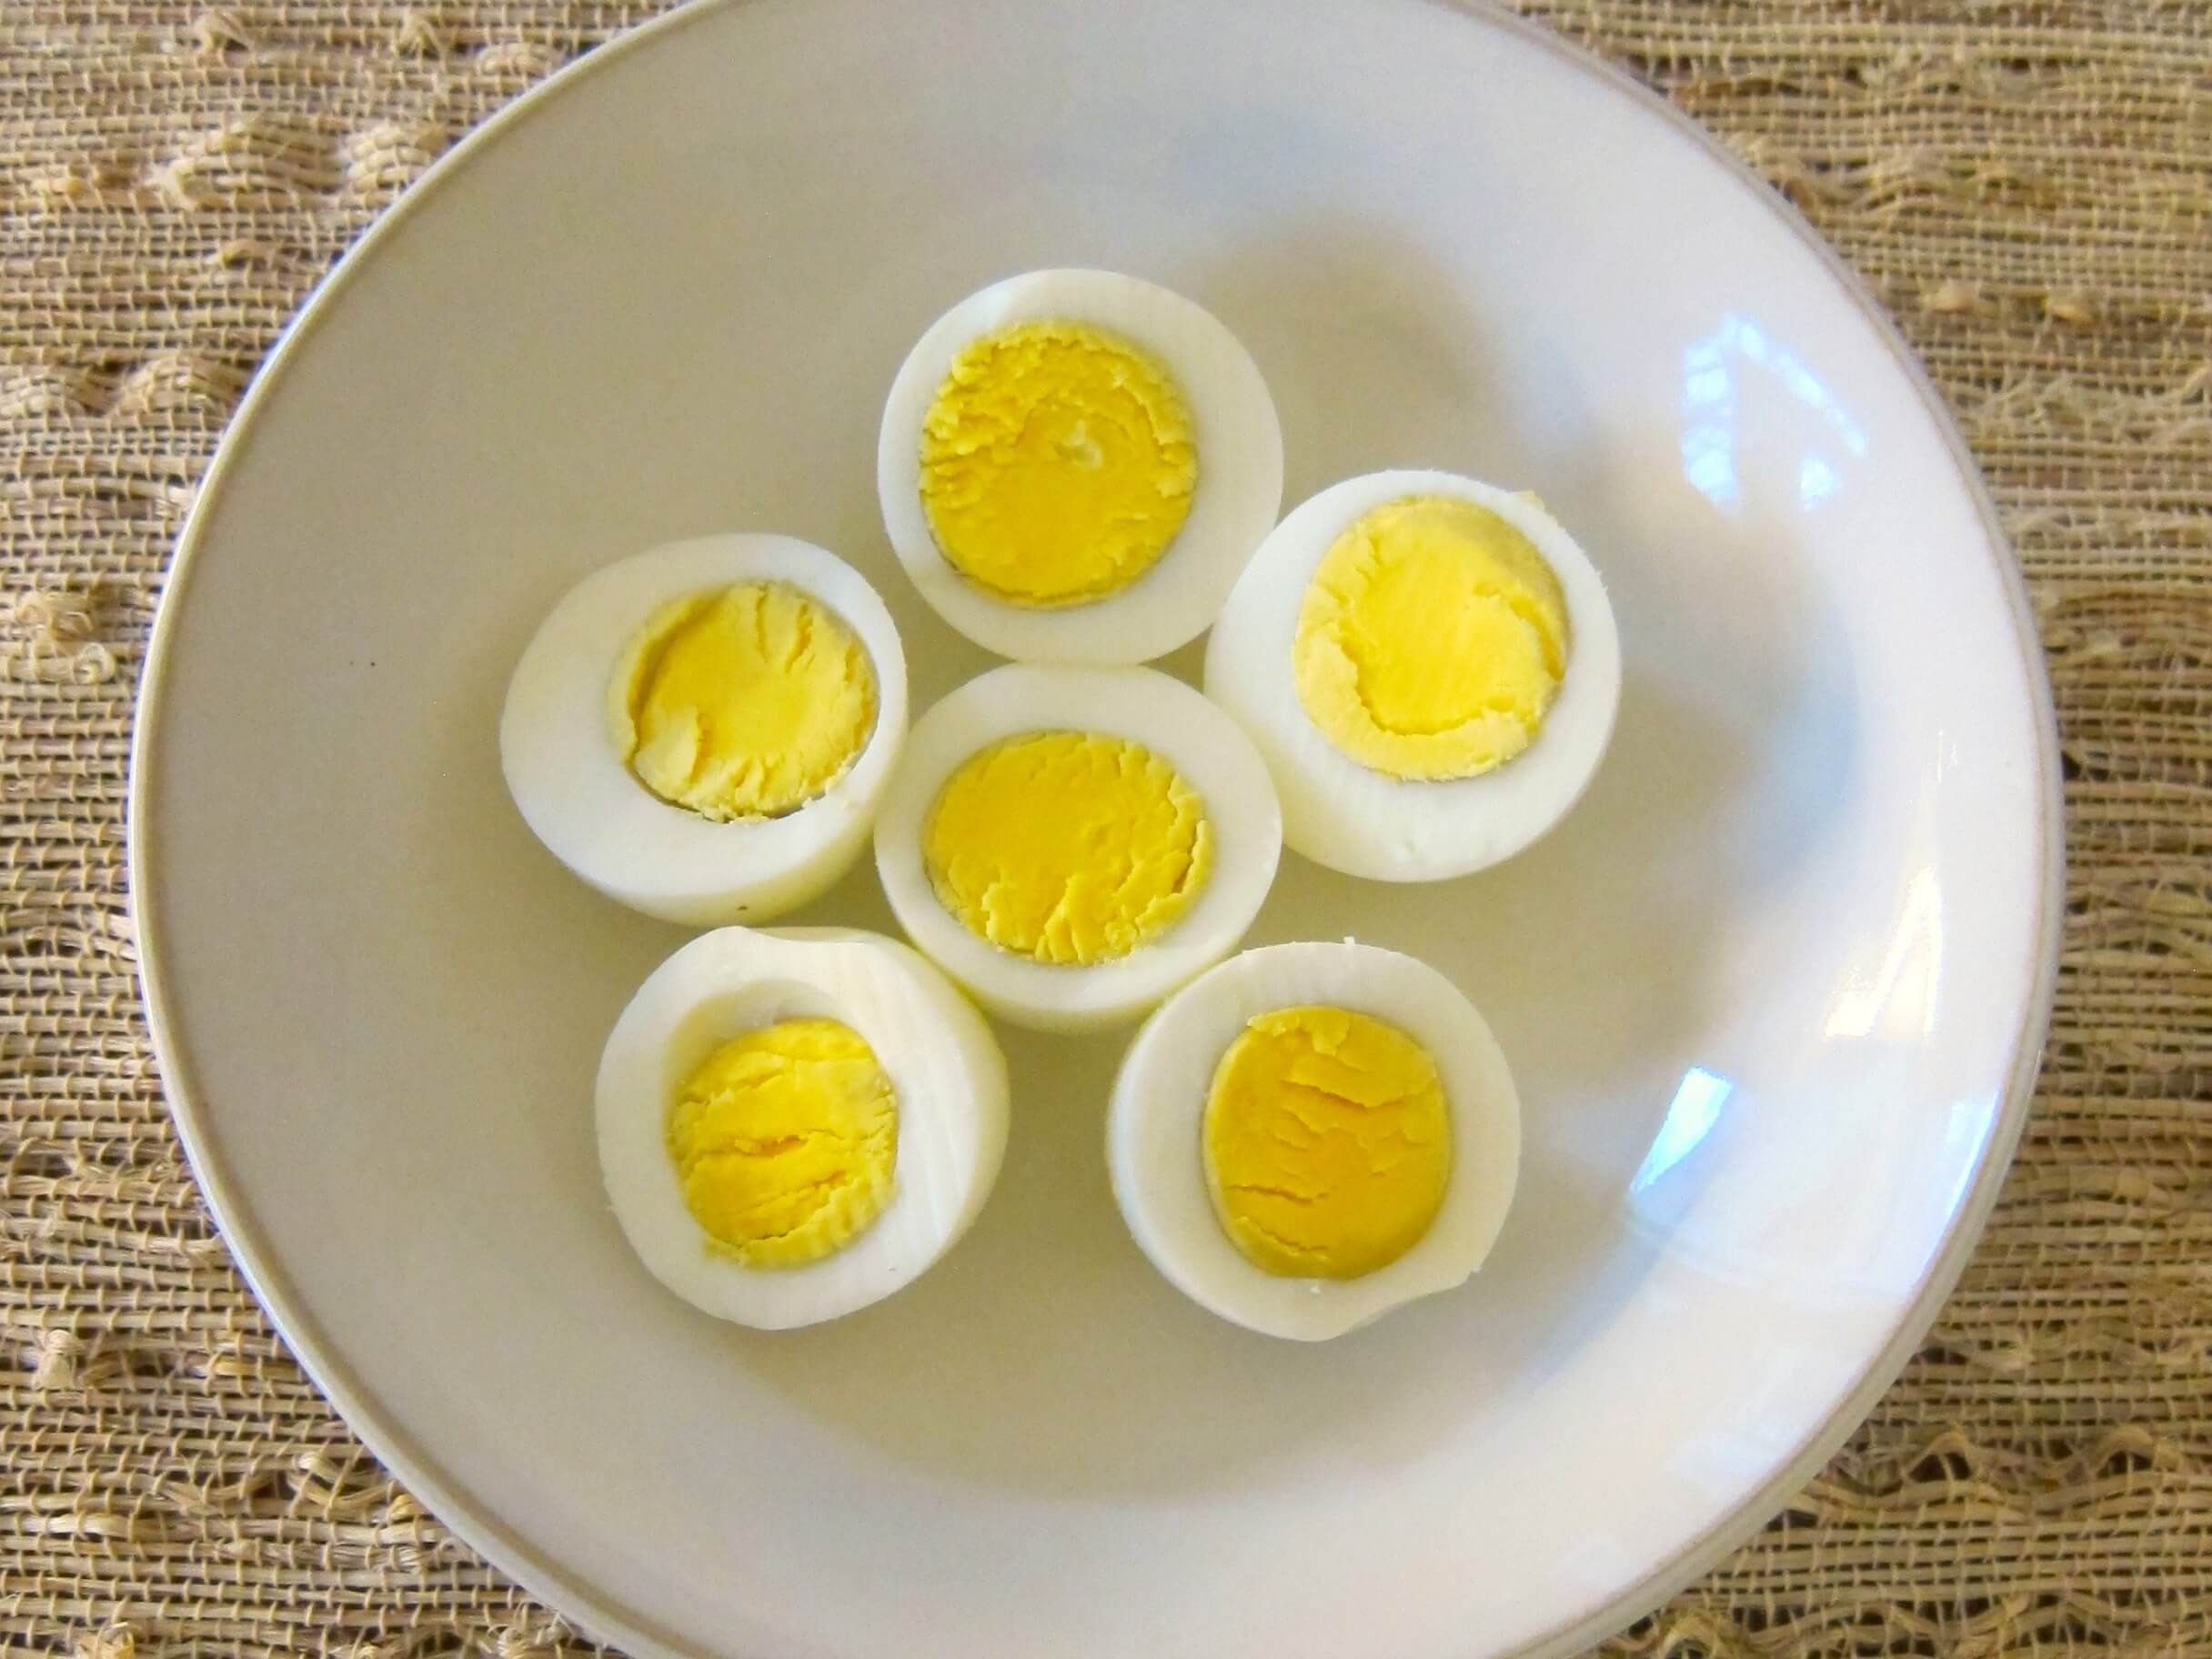 Finally a solution to hard to peel or overcooked eggs making instant pot hard boiled eggs paint the kitchen red ccuart Gallery